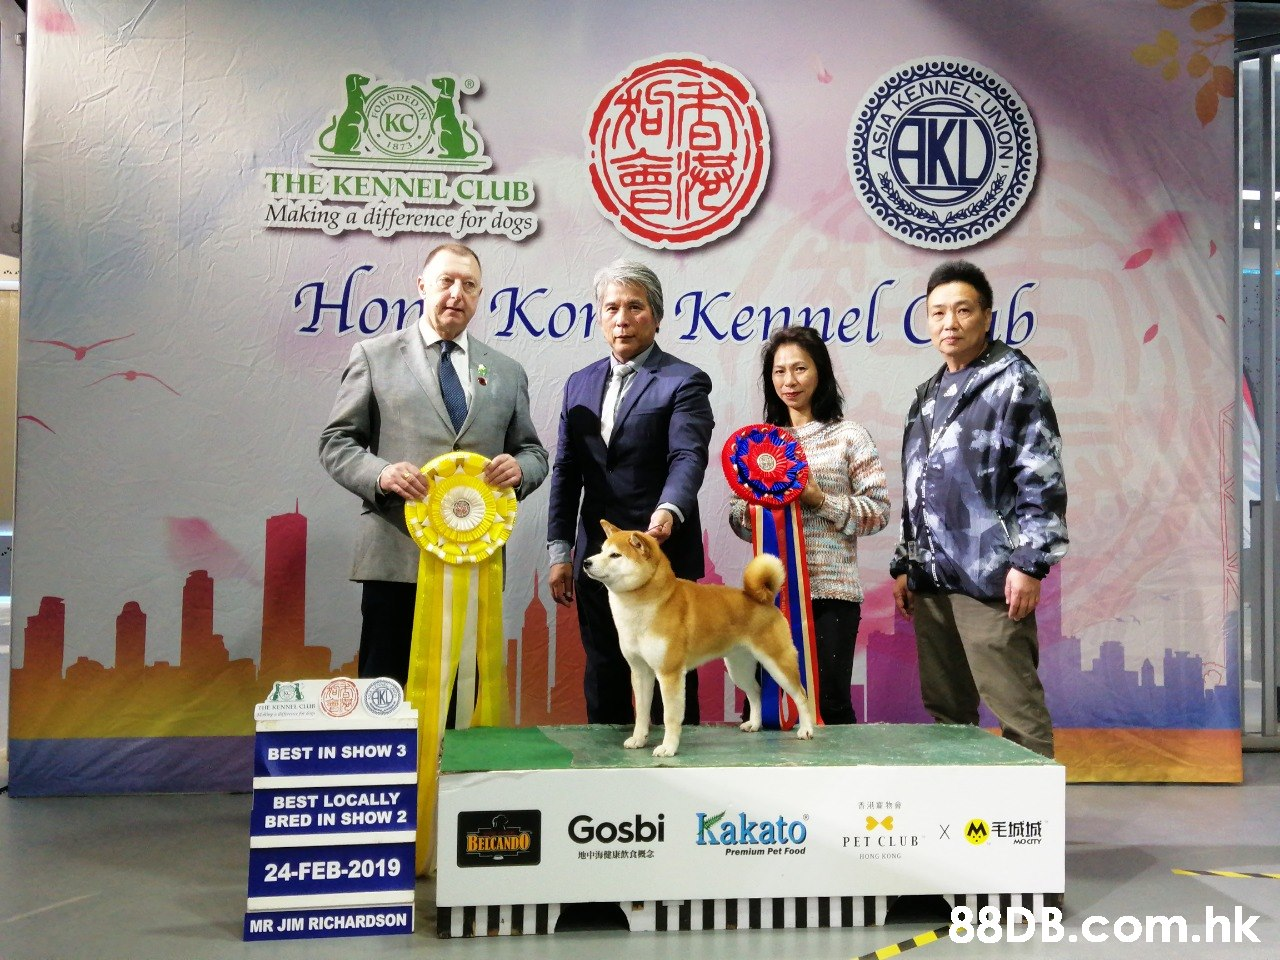 Ou NDED KENN (KC I873 THE KENNEL CLUB Making a difference for dogs Hor Ko Kepnel b BEST IN SHOW 3 BEST LOCALLY BRED IN SHOW 2 Gosbi Kakato 香港審物會 BELCANDO M毛城城 X PET CLUB 地中海健康飲食概念 24-FEB-2019 MR JIM RICHARDSON .hk ASIAA NOIN  Dog,Canidae,Junior showmanship,Conformation show,Kennel club